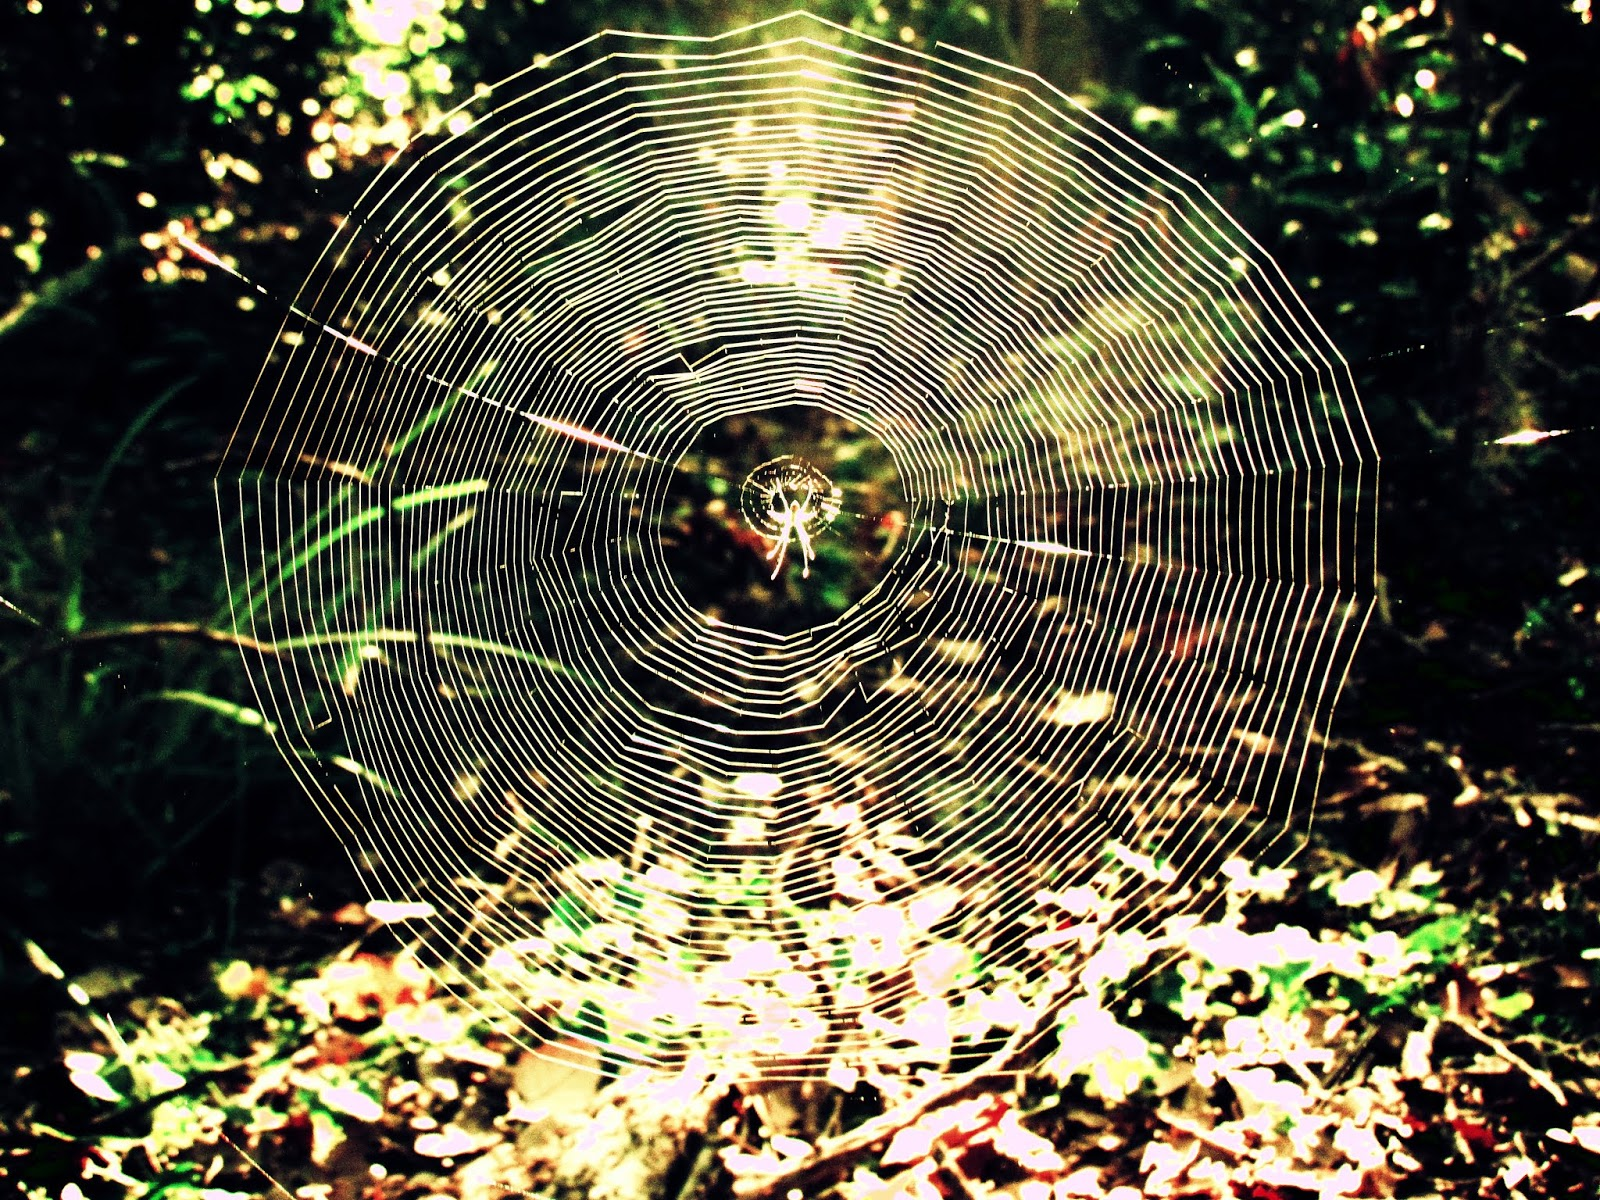 a spiderweb and Florida box spider glistening in the sunlight in the heart of a faery forest